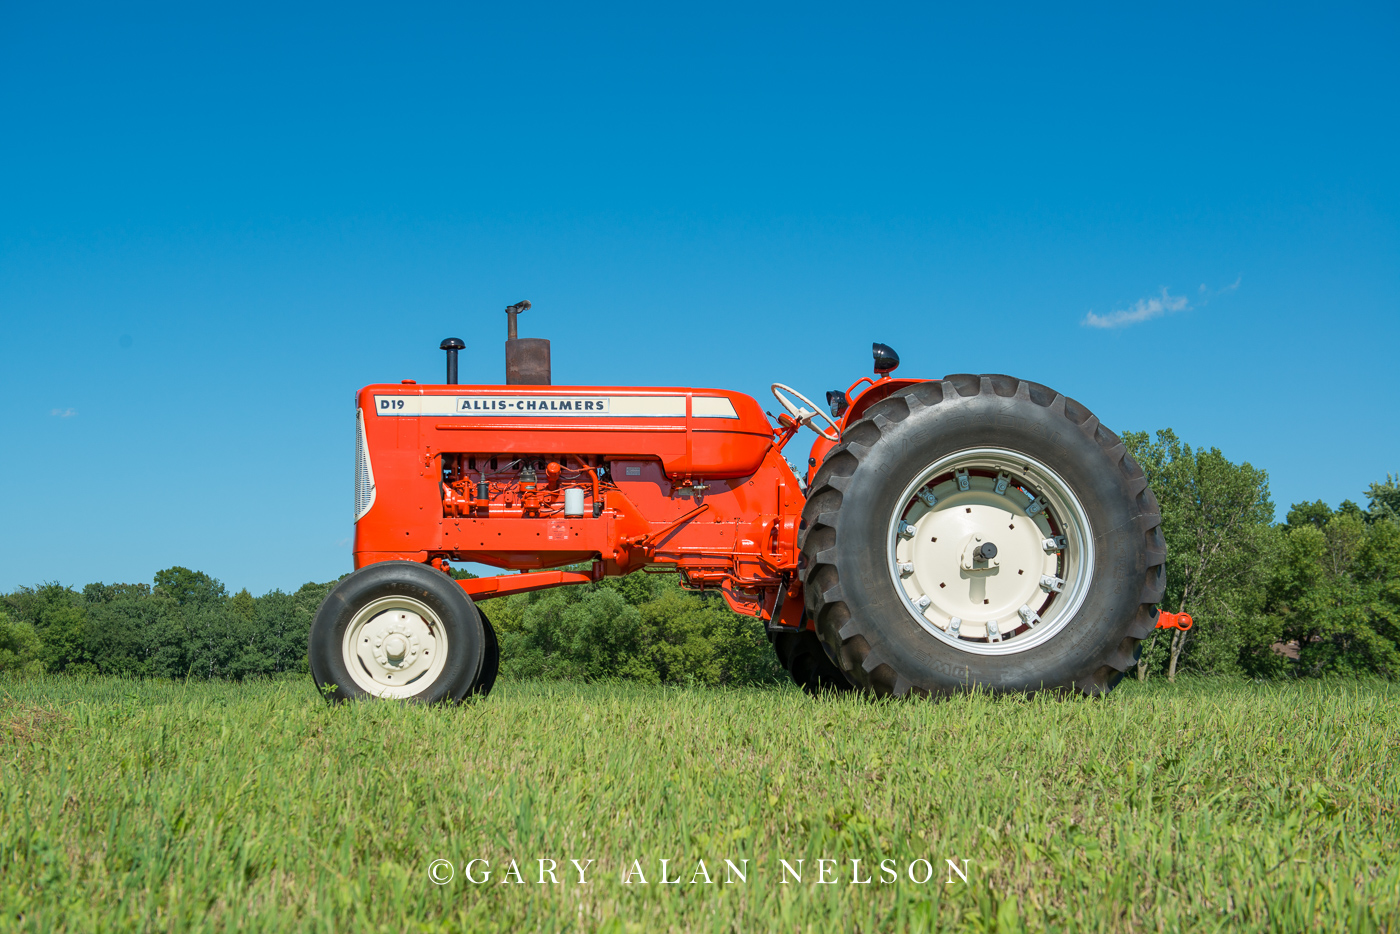 Allis Chalmers, antique tractor, photo